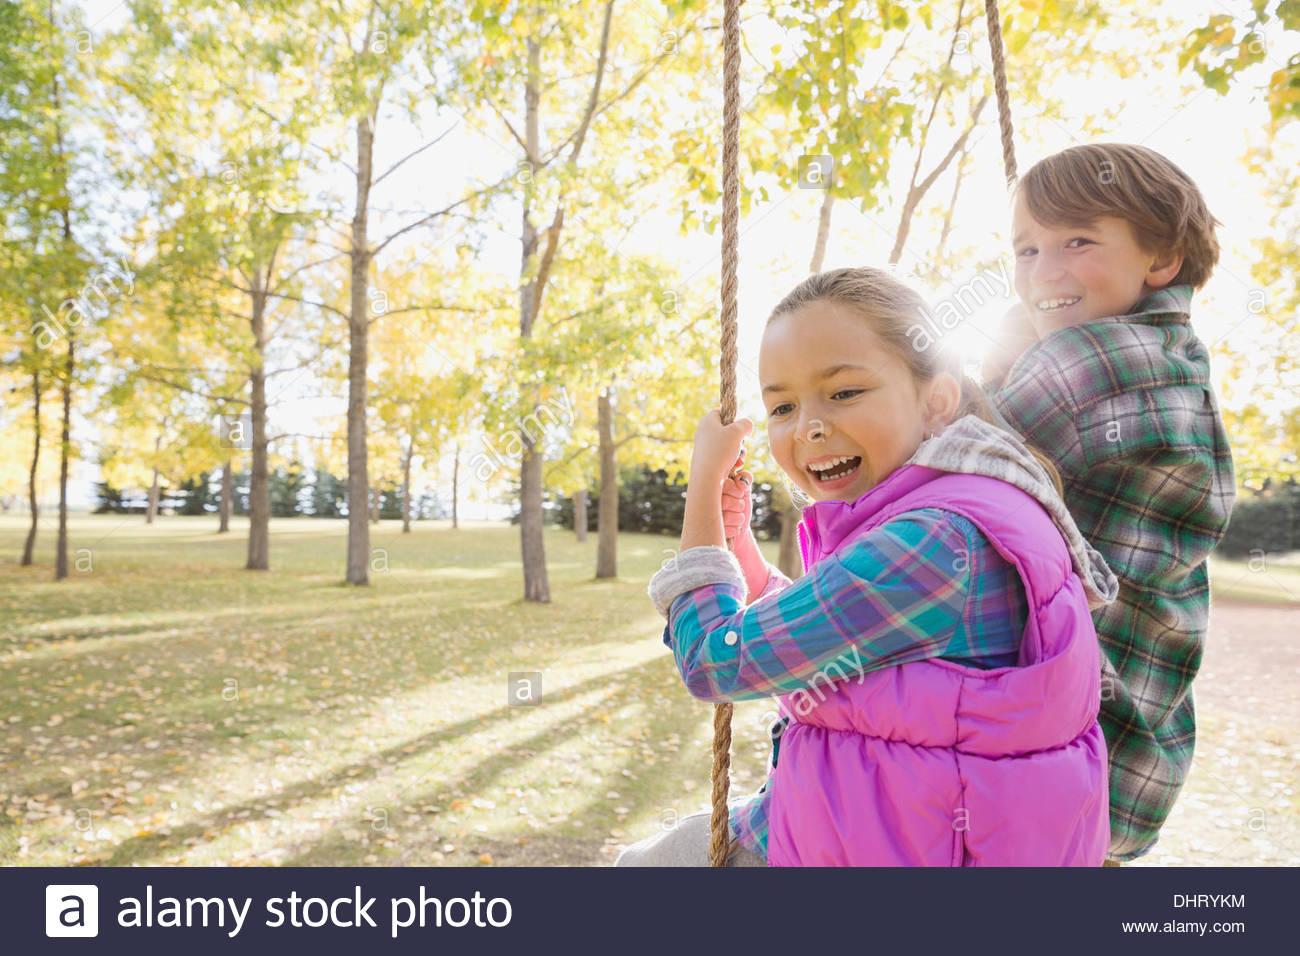 Siblings swinging at park - Stock Image